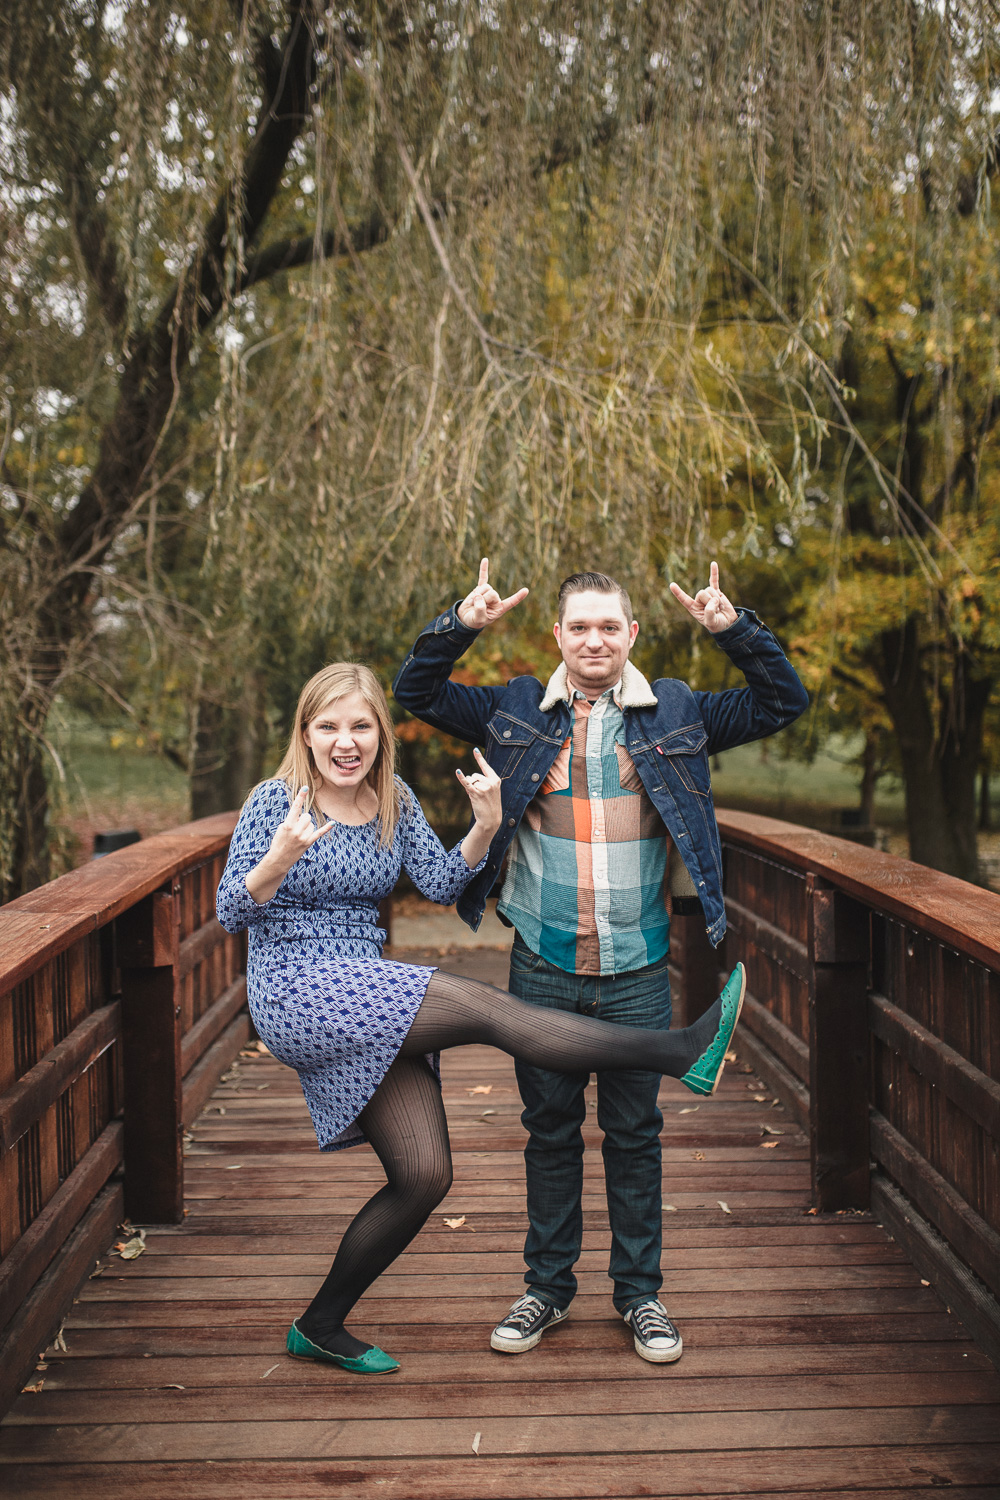 Kate_Bobby__Engagement_Session_Kansas_City_In_Home_Session_Autumn_Kelsey_Diane_Photography-0666.jpg